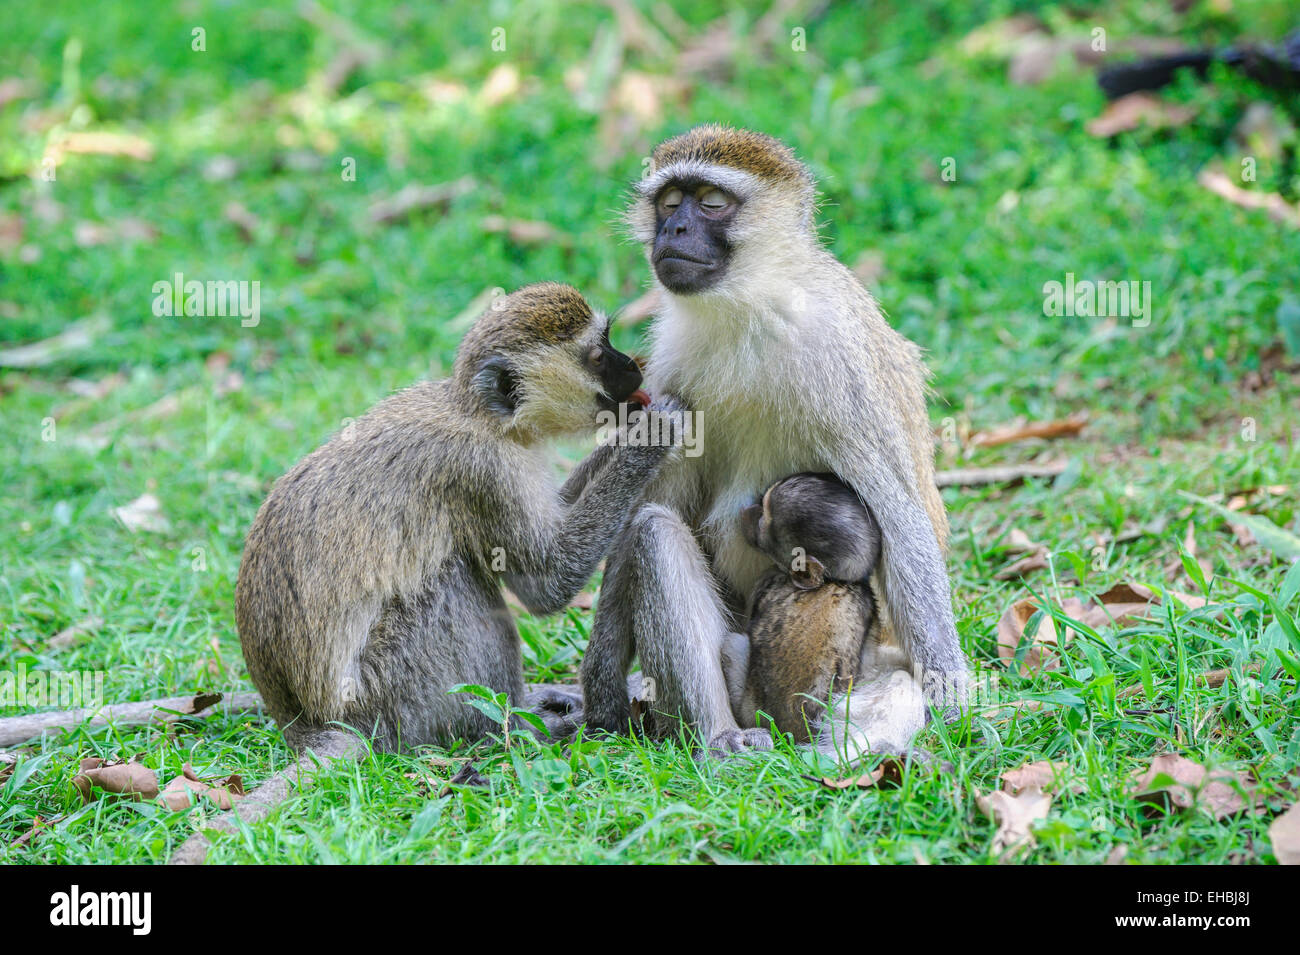 Bliss: adult female a vervet monkey being groomed with her offspring clinging to her. - Stock Image